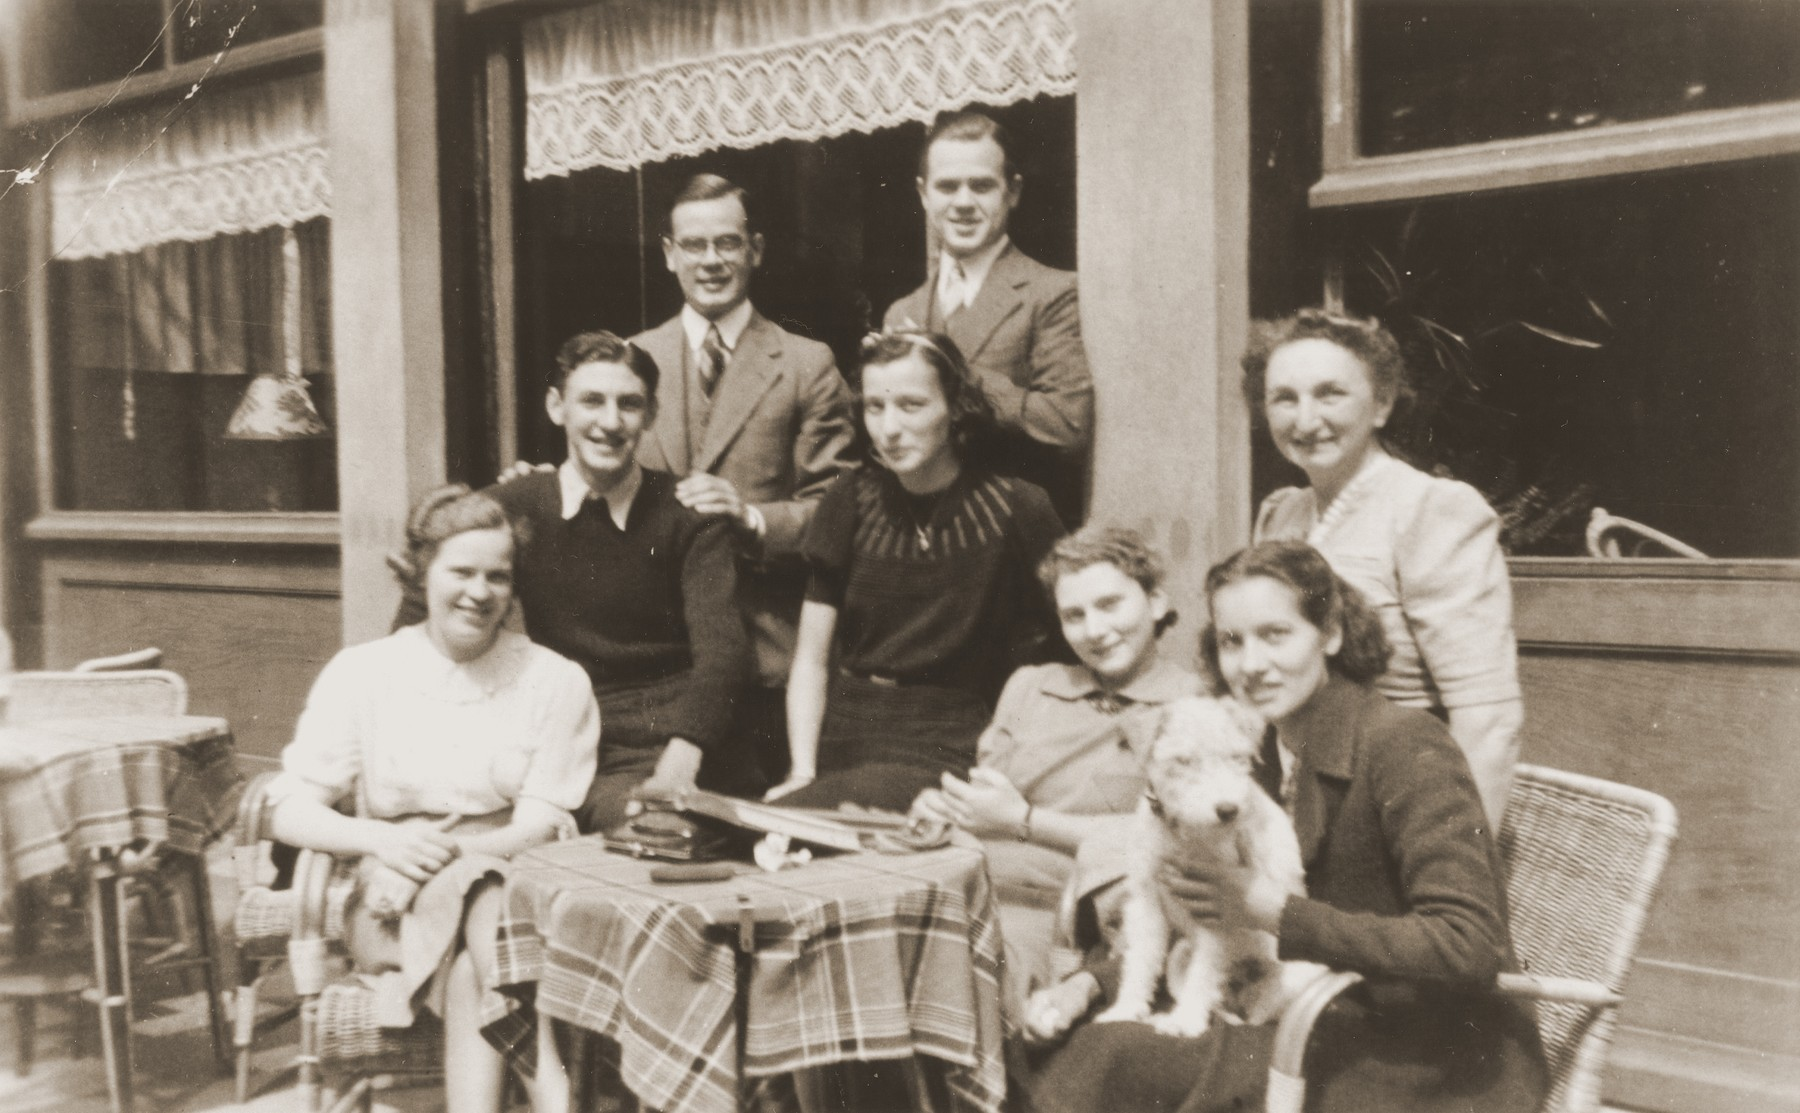 The Jacobsthal family poses at an outdoor cafe in Amsterdam.  Hilde Jacobsthal is pictured at the lower right.